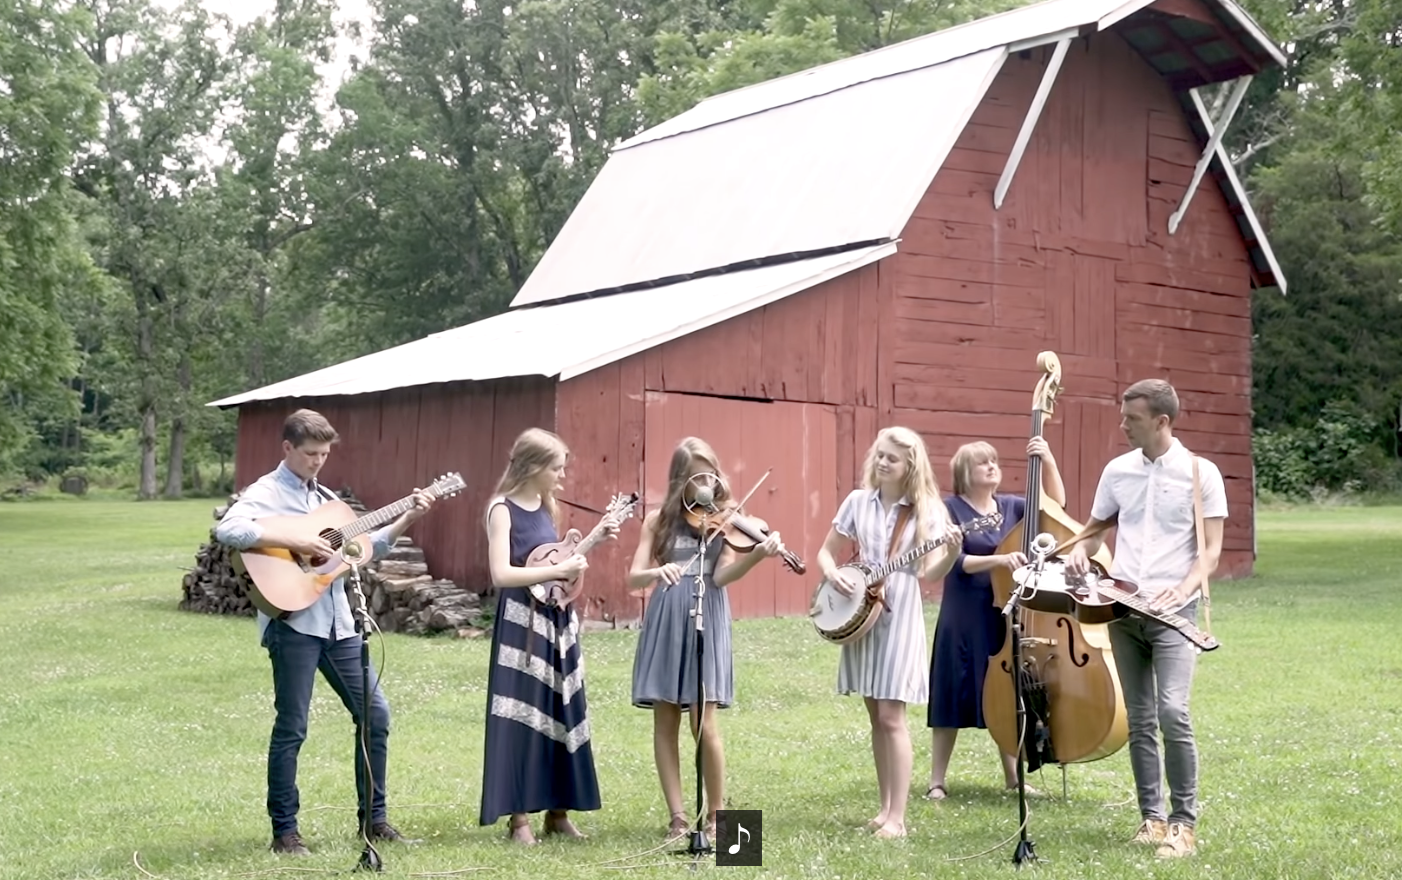 Hey Grandpa – an inspired song by The Peterson's